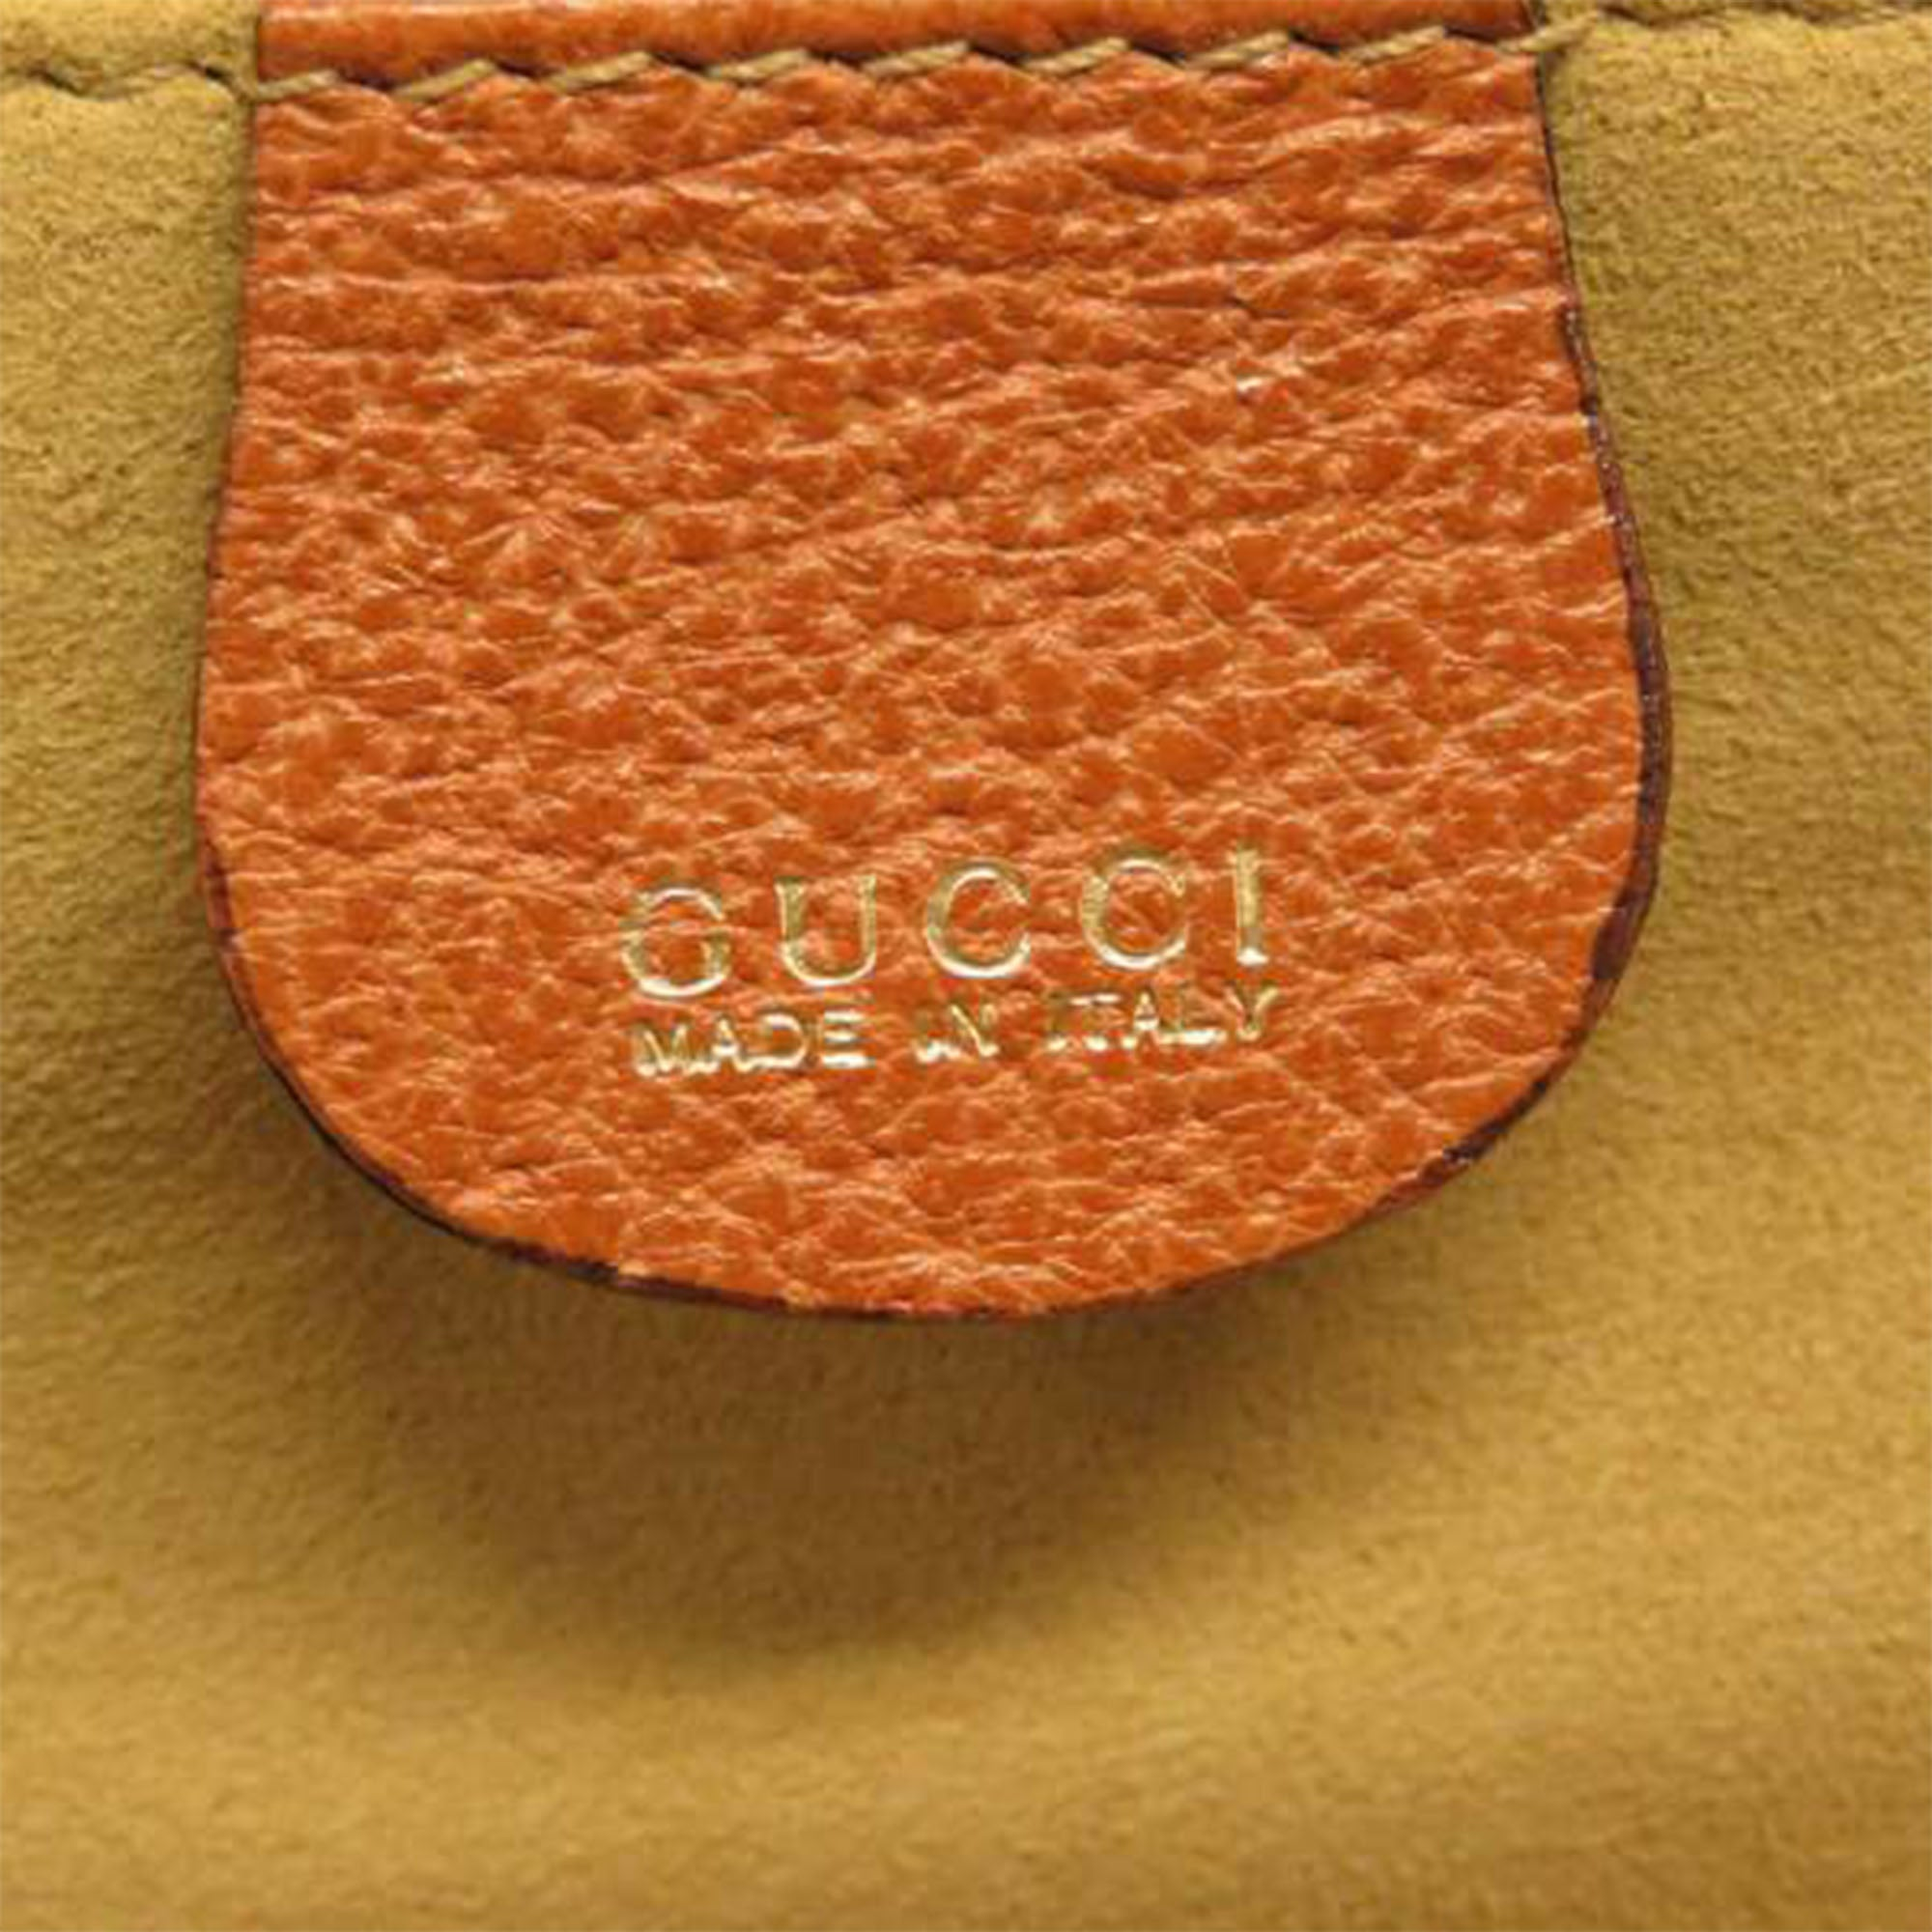 Gucci Brown Bamboo Leather Vanity Bag